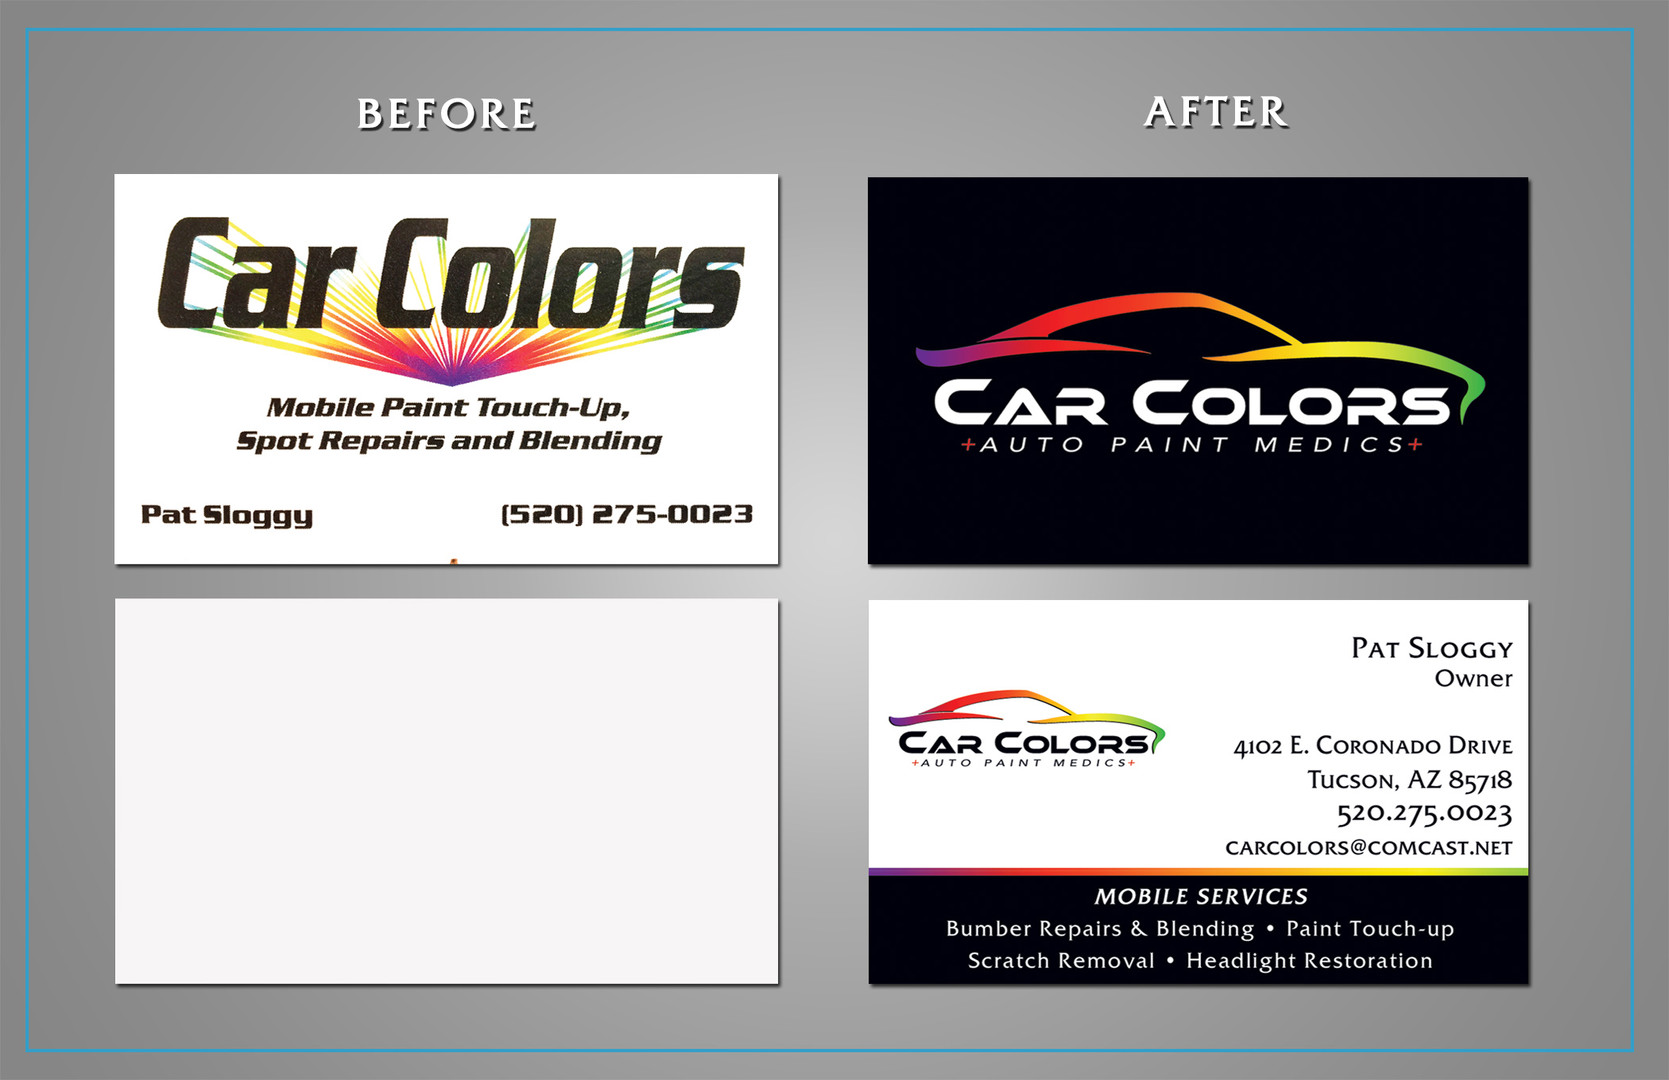 Before After_ BC_CAR COLORS.jpg